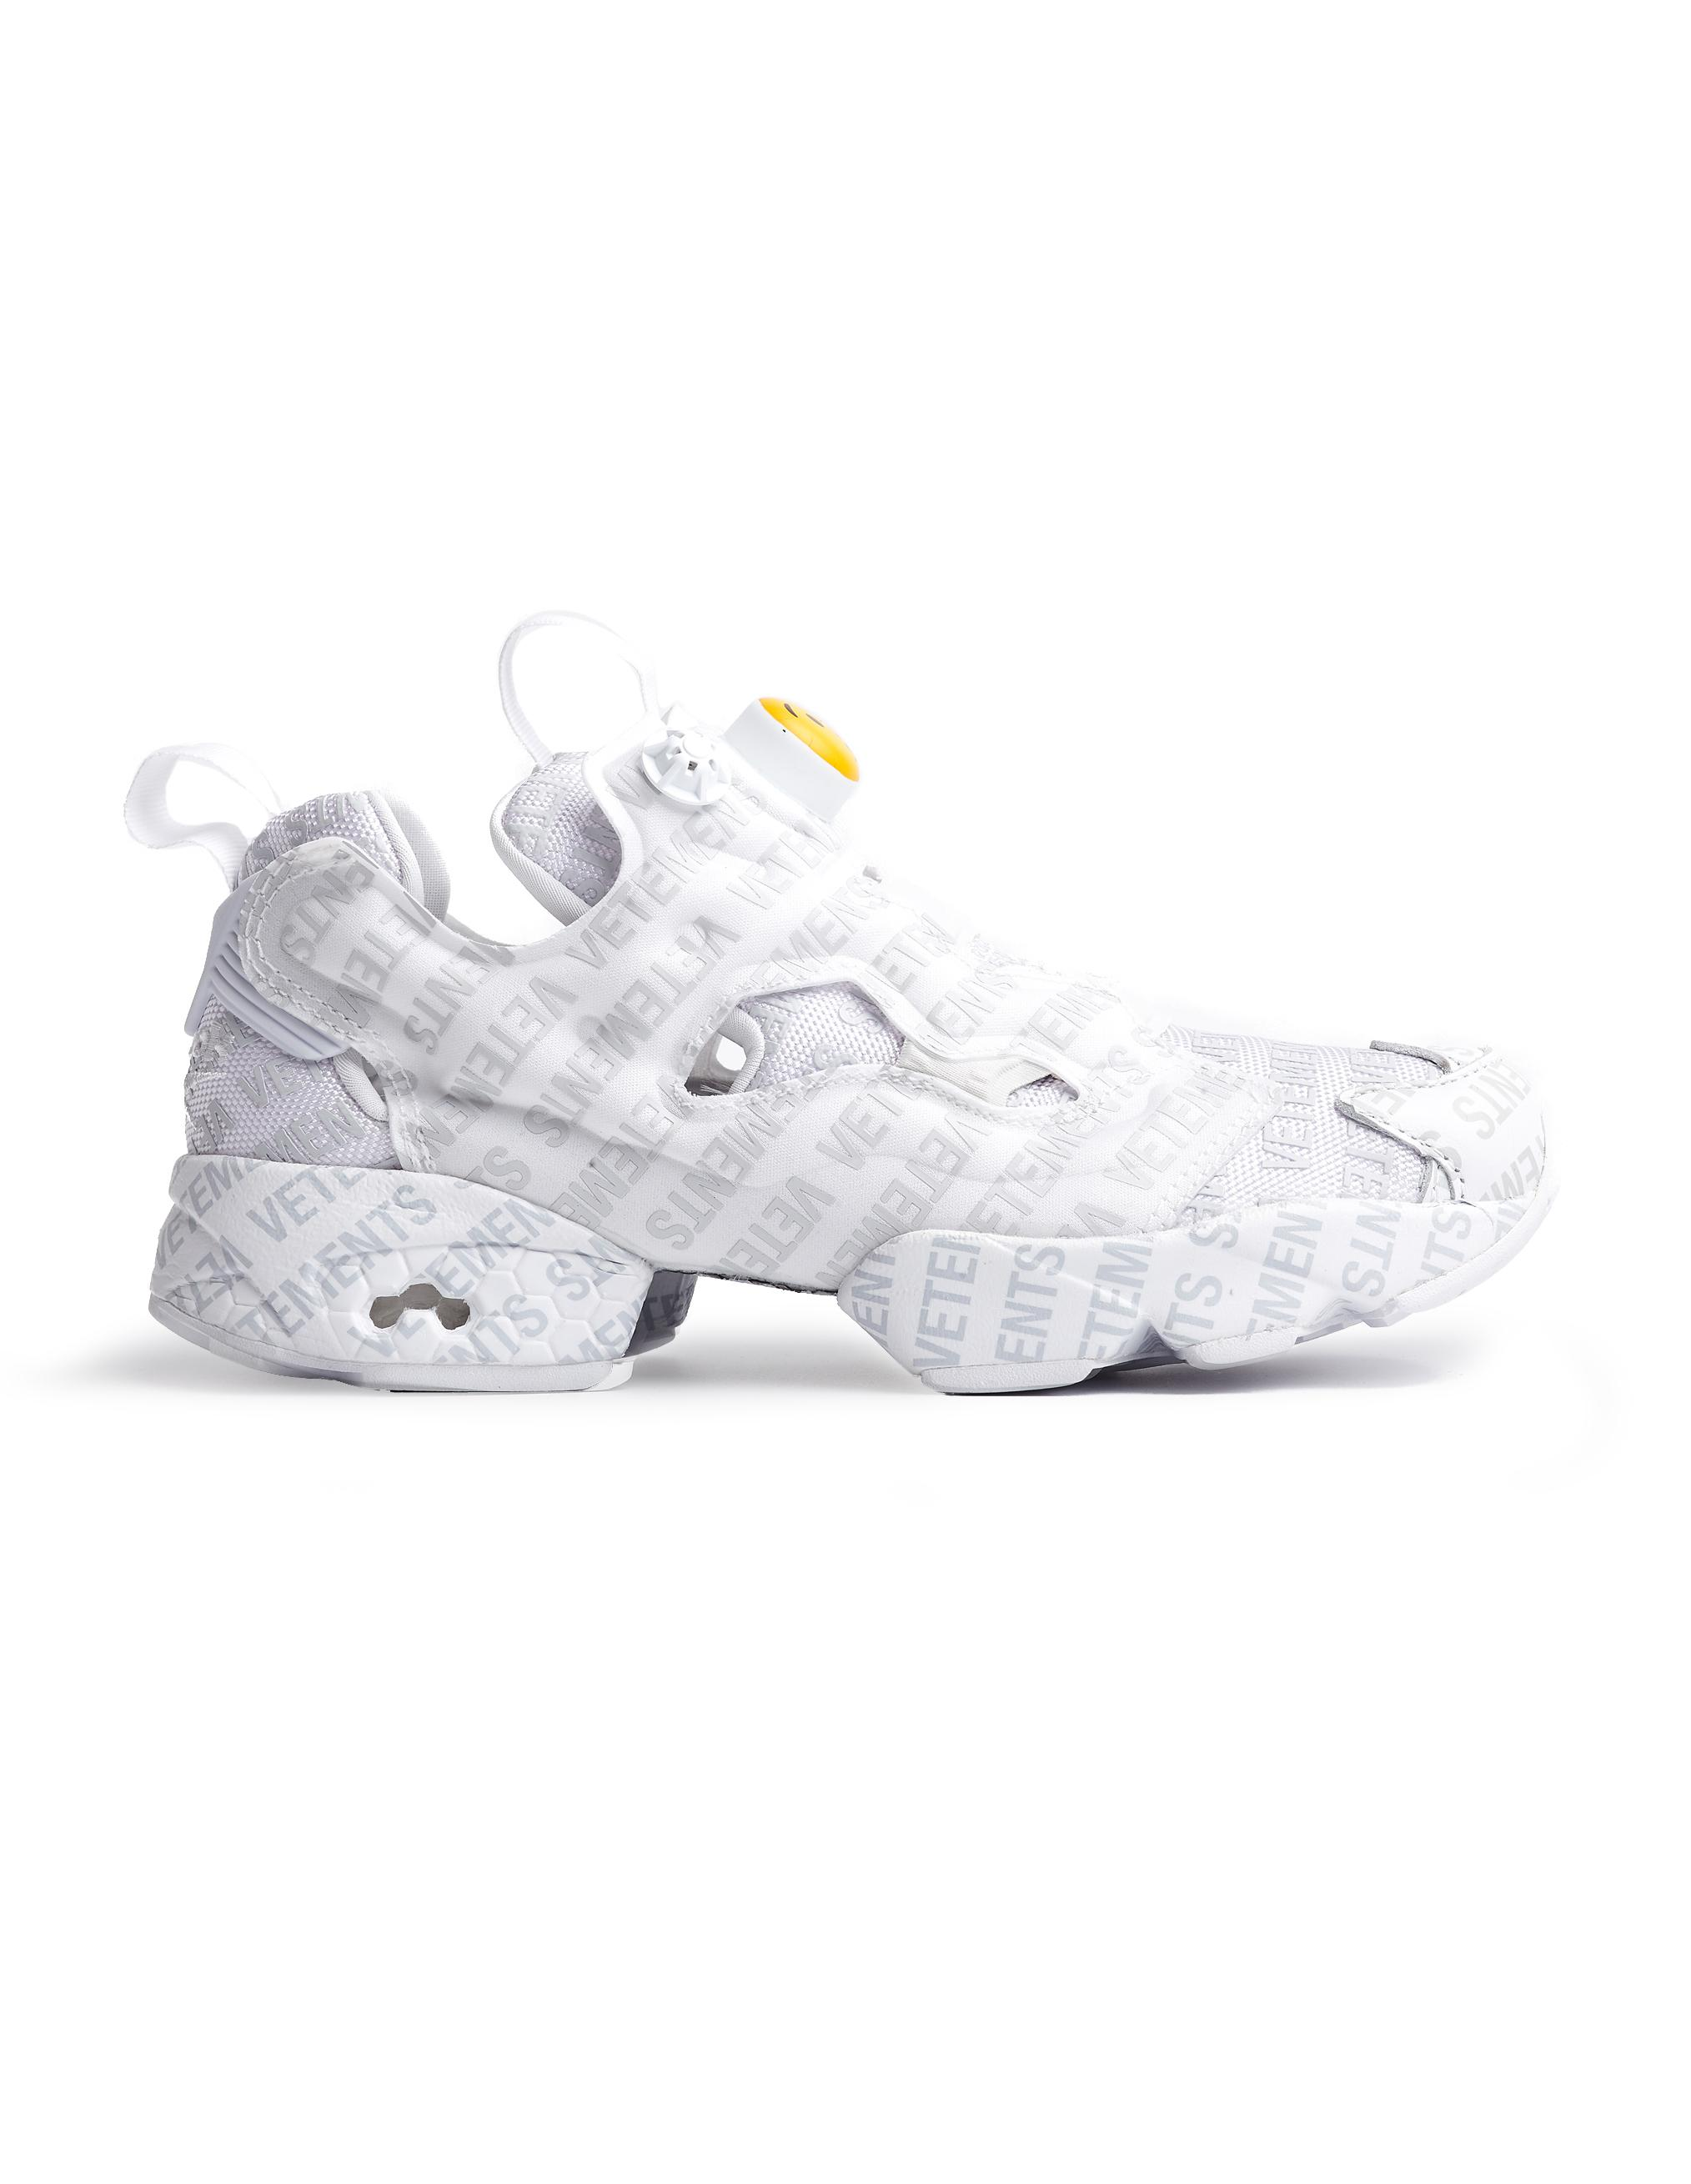 884d32d72add ... Reebok Logo Instapump Fury Sneakers for Men - Lyst. View fullscreen